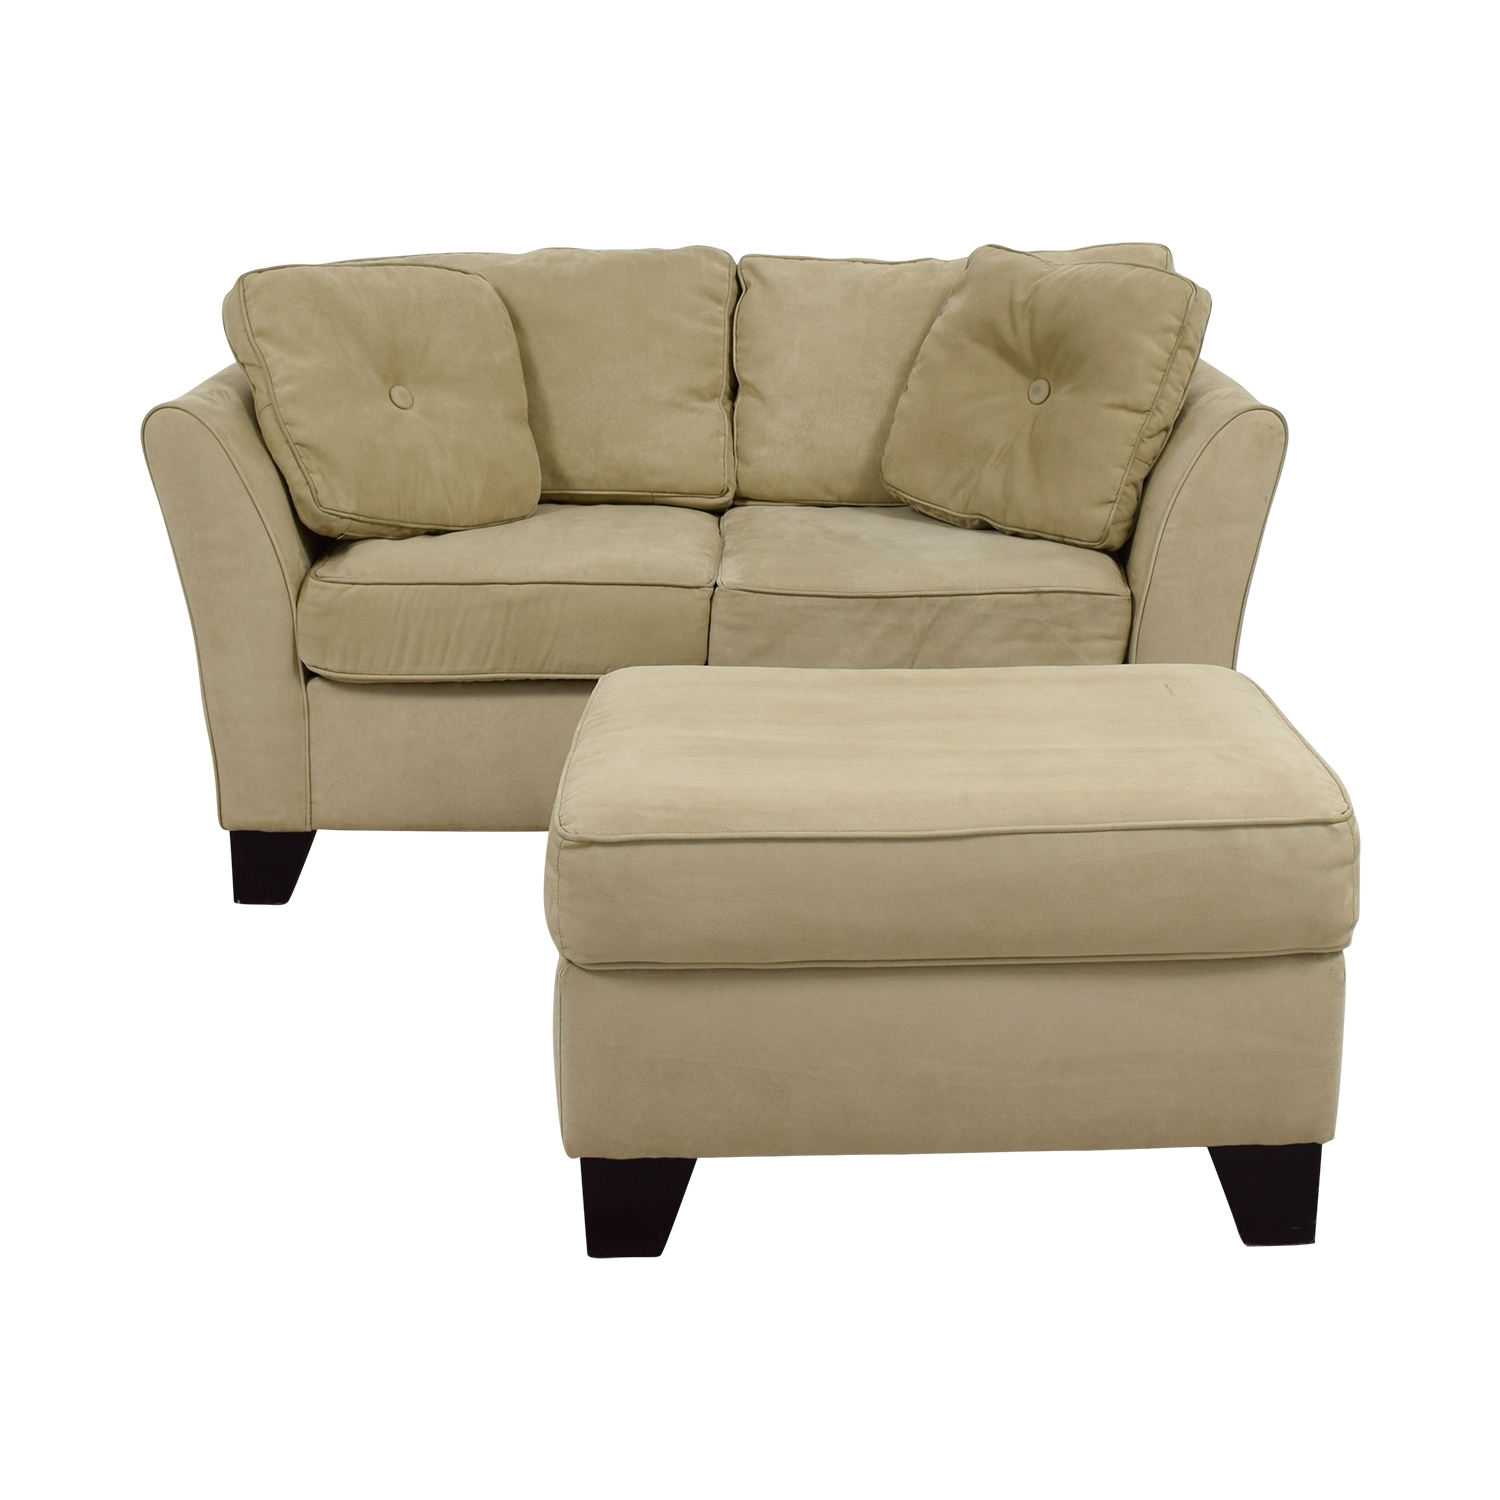 86% Off – Macy's Macy's Tan Loveseat With Ottoman / Sofas Inside Loveseats With Ottoman (Photo 2 of 10)